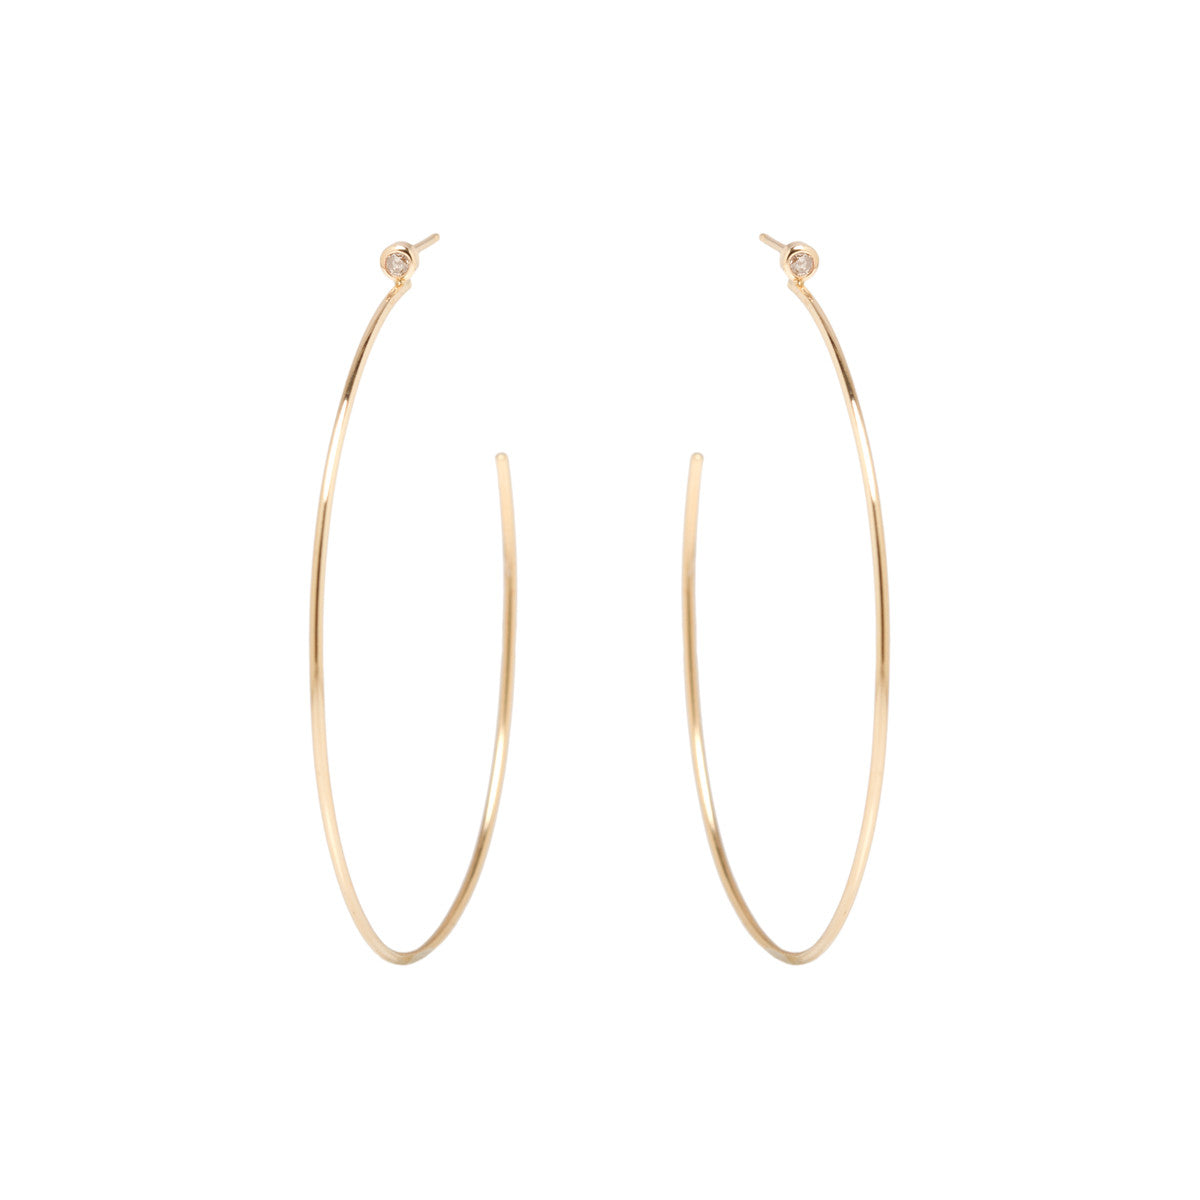 Zoë Chicco 14kt Yellow Gold Large Bezel Set White Diamond Stud Hoop Earrings